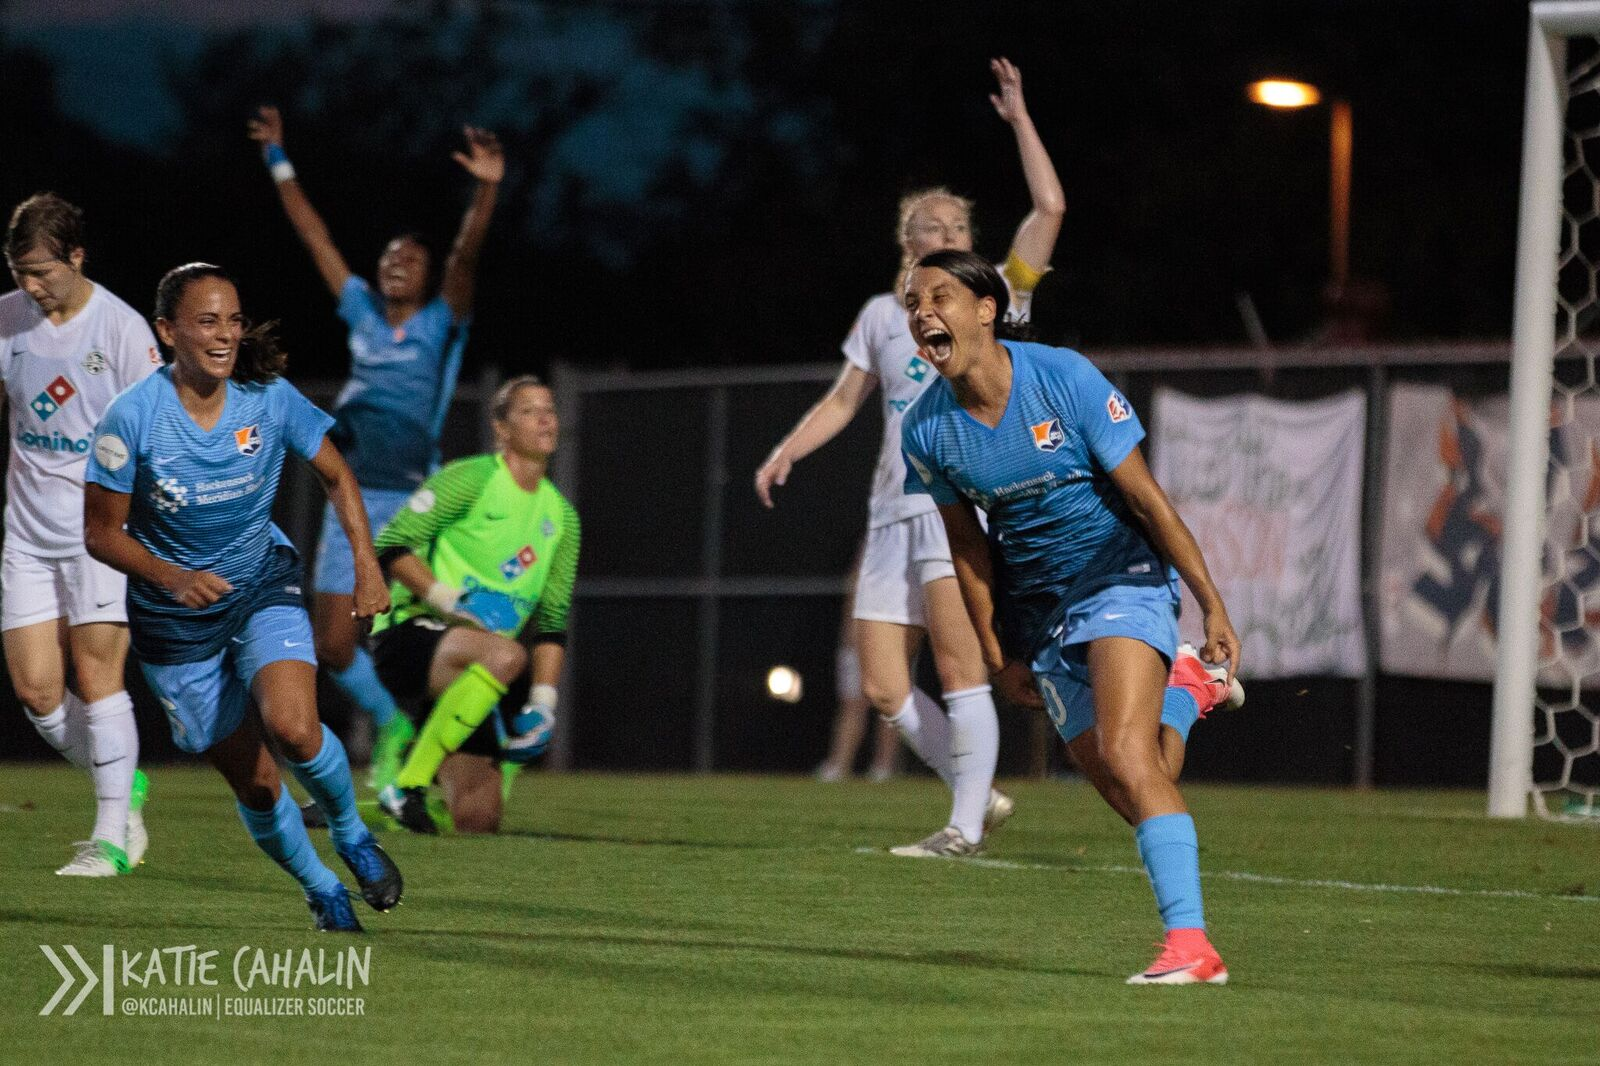 Sam Kerr brought a lot of joy to Yurcak Field on Saturday night (photo copyright Katie Cahalin for The Equalizer)